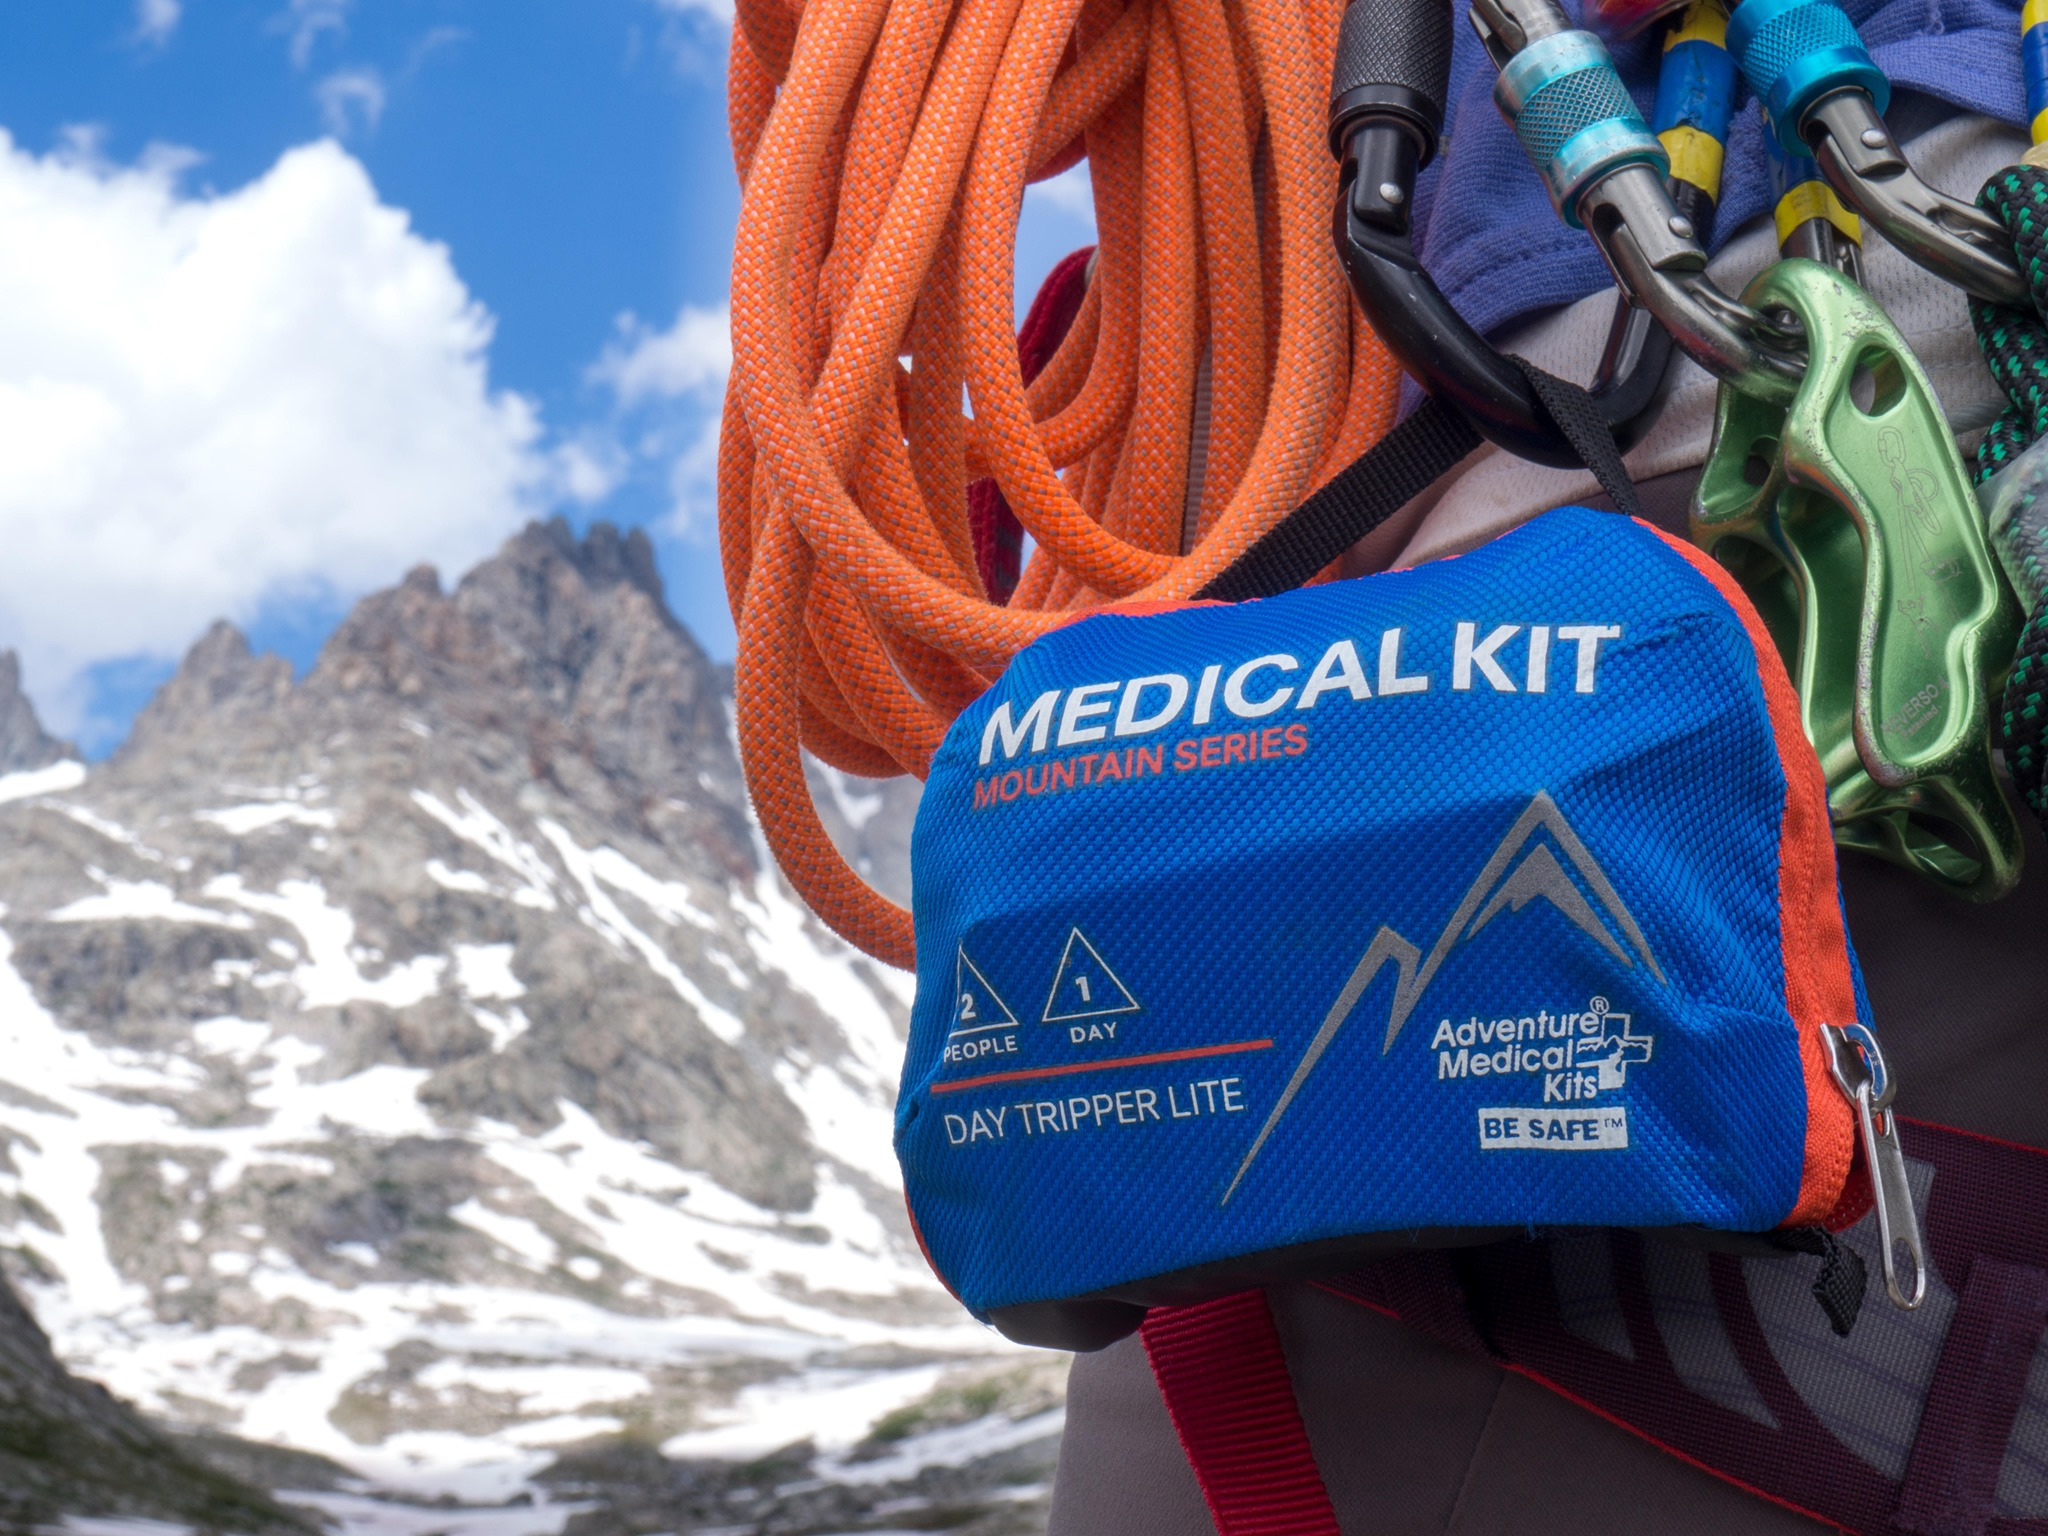 Courtesy: Adventure Medical Kits